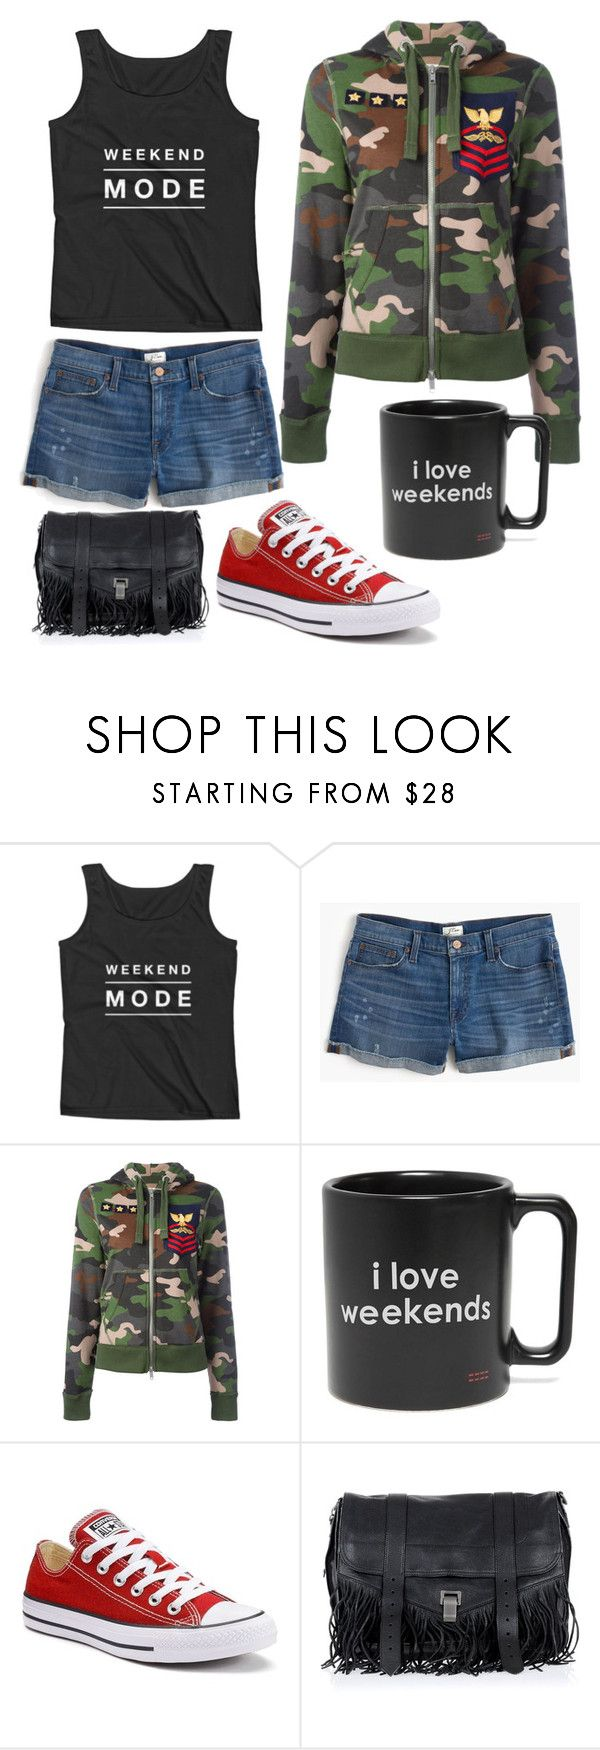 """""""Weekend mode"""" by mydreamingcloset ❤ liked on Polyvore featuring J.Crew, History Repeats, Peace Love World, Converse, Proenza Schouler and weekend"""